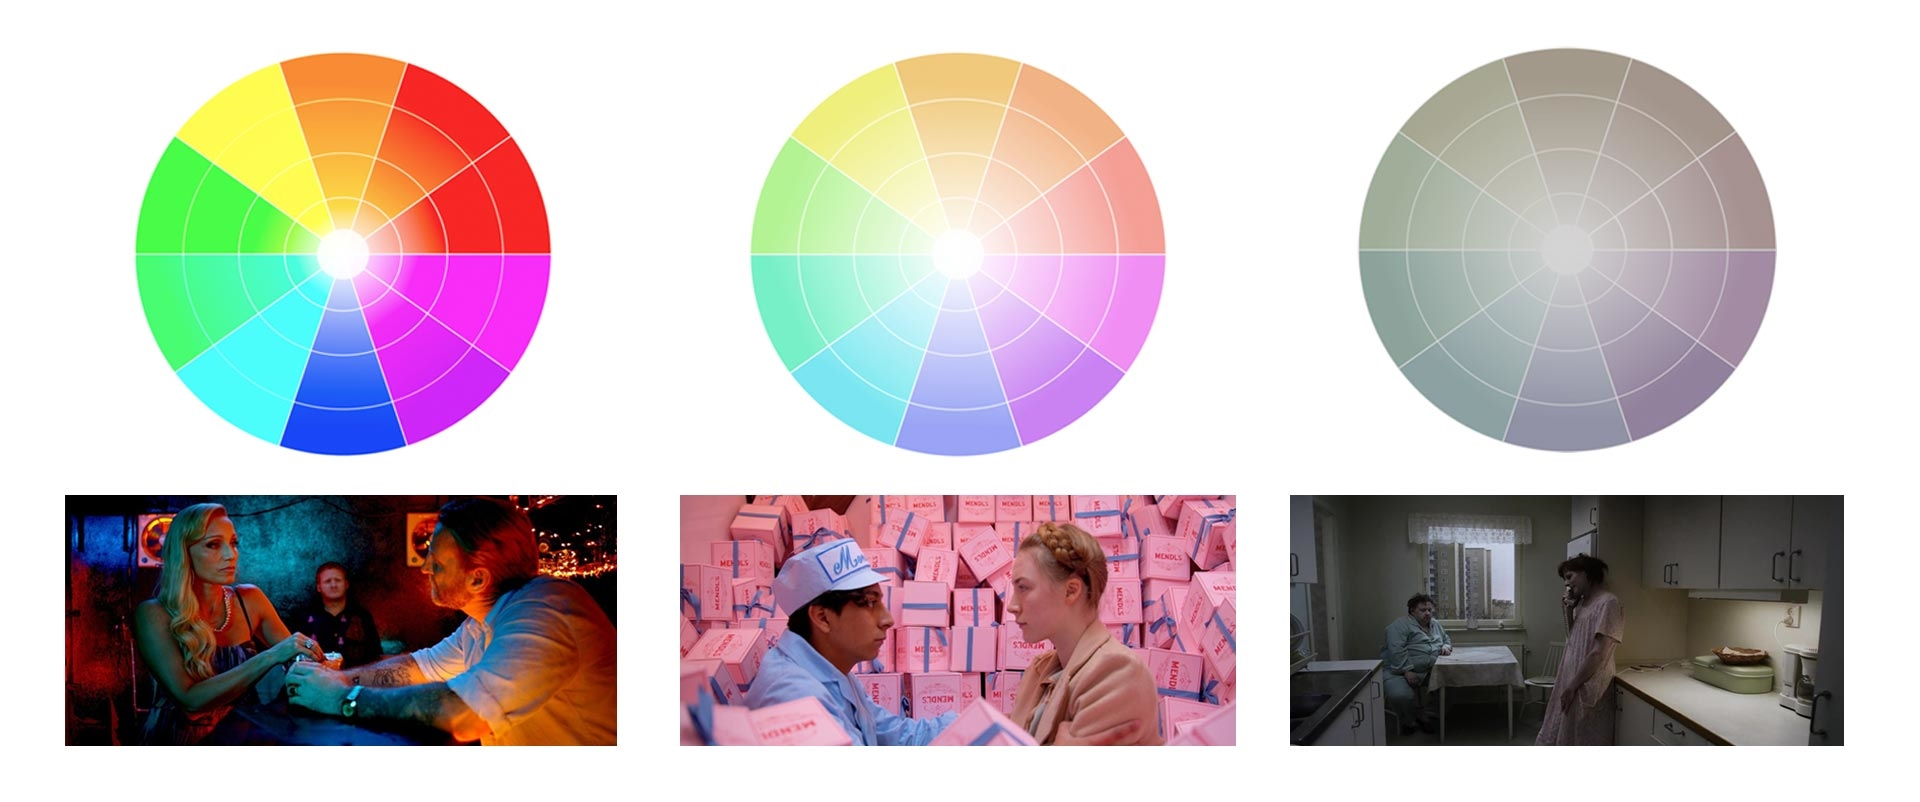 10 Colour Palettes to Give Your Video a Filmic Look | DeviceDaily.com